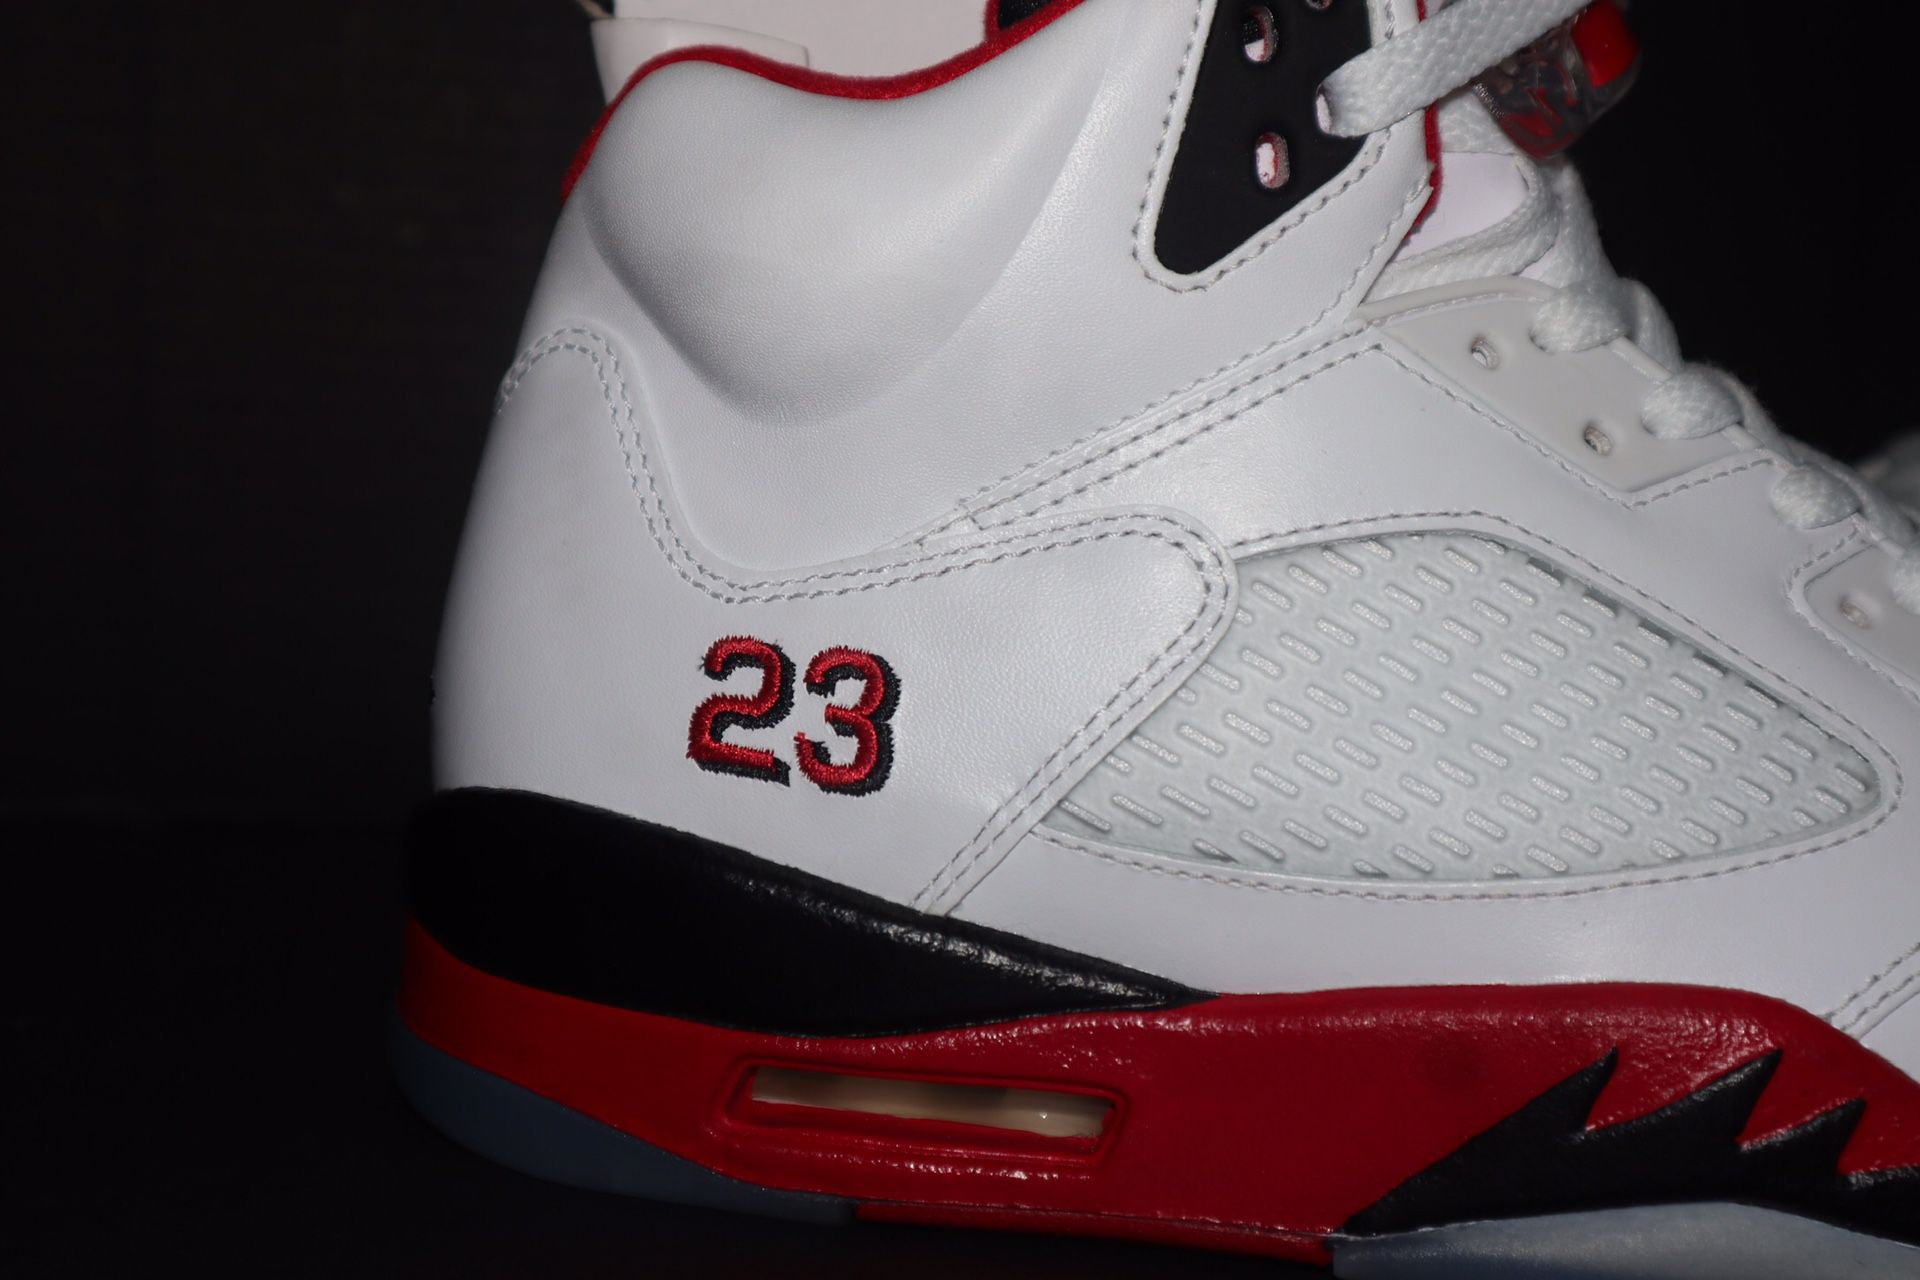 2013 Jordan Fire Red 5 size 9.5 DS Kept Brand new for 7 years